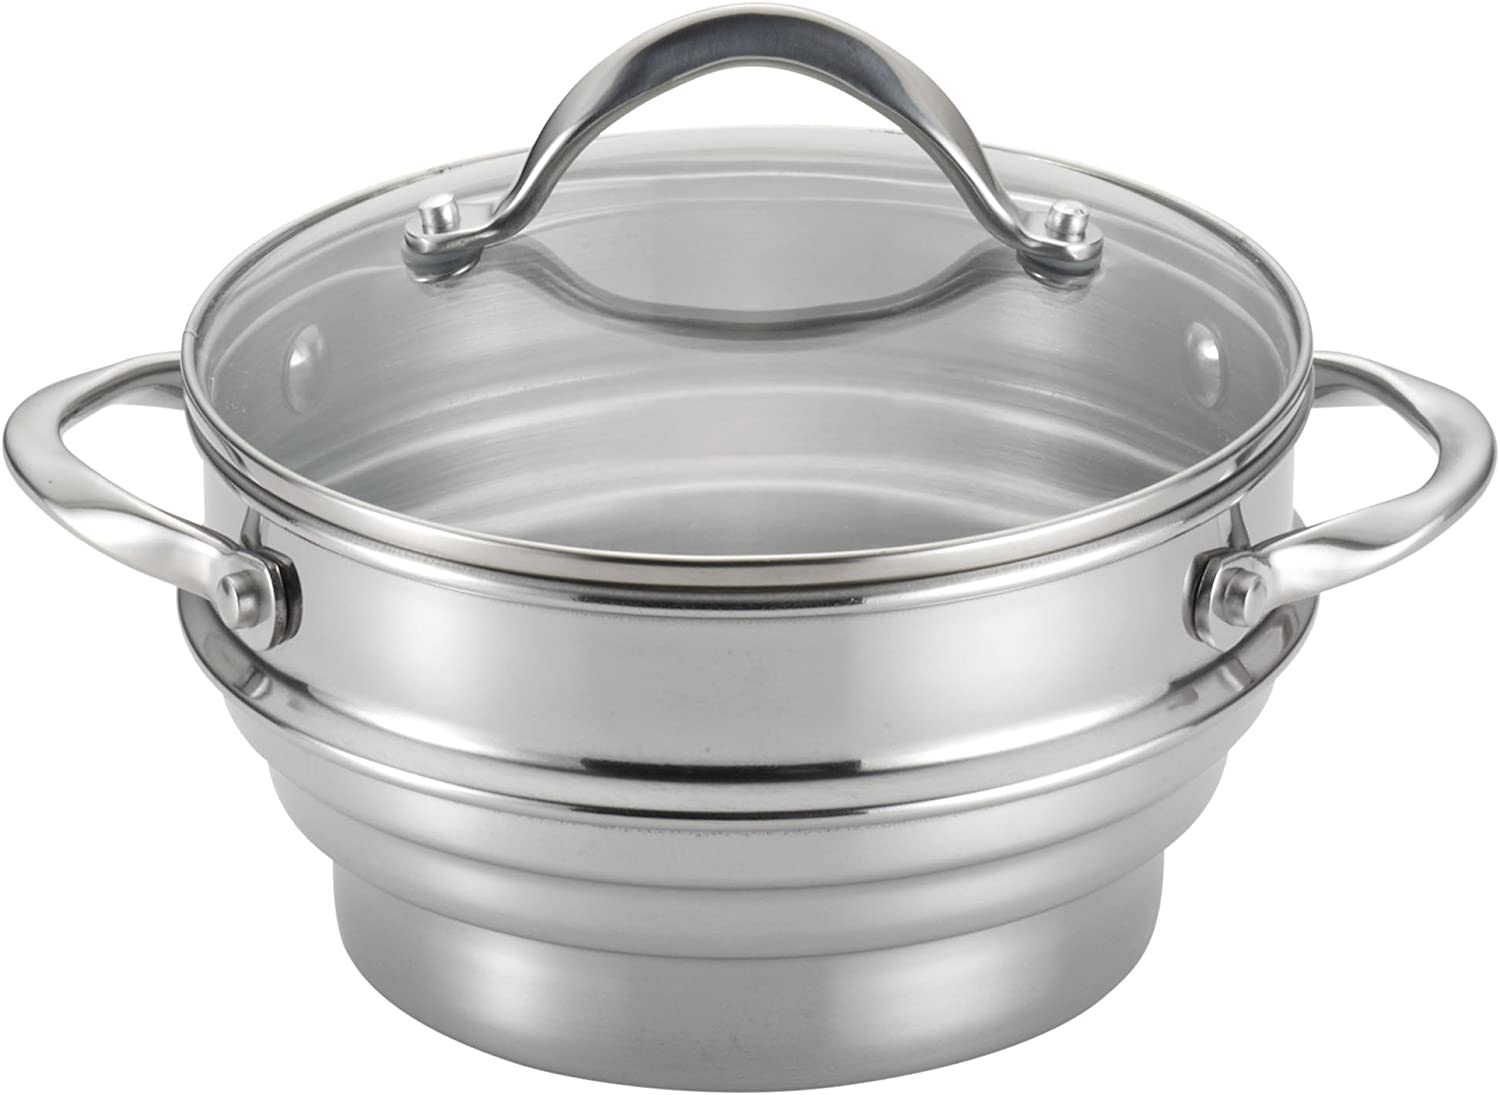 Circulon Stainless Steel Universal Steamer with Lid, Medium – 70135